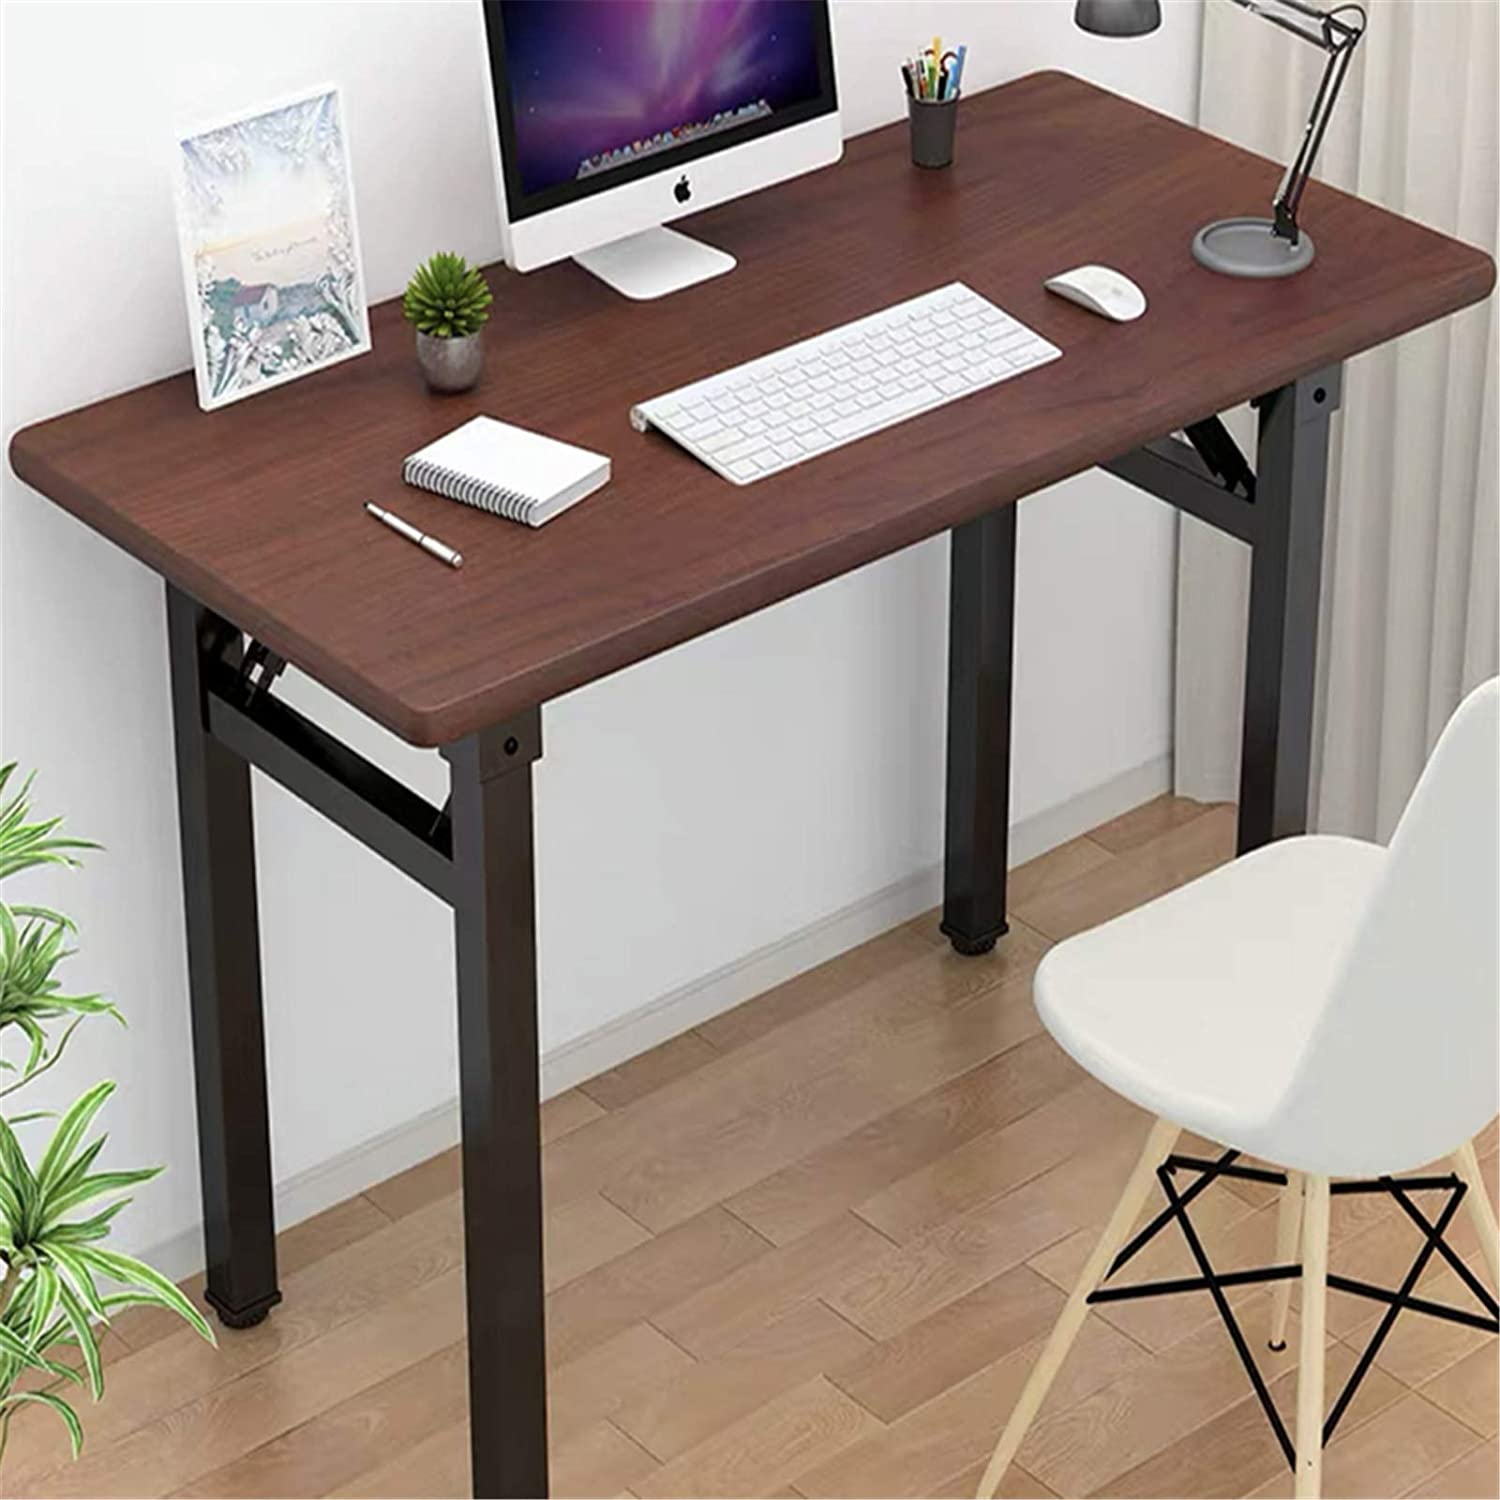 Gaming Table Computer free shipping Desk Wholesale Space-Saving Home Easy